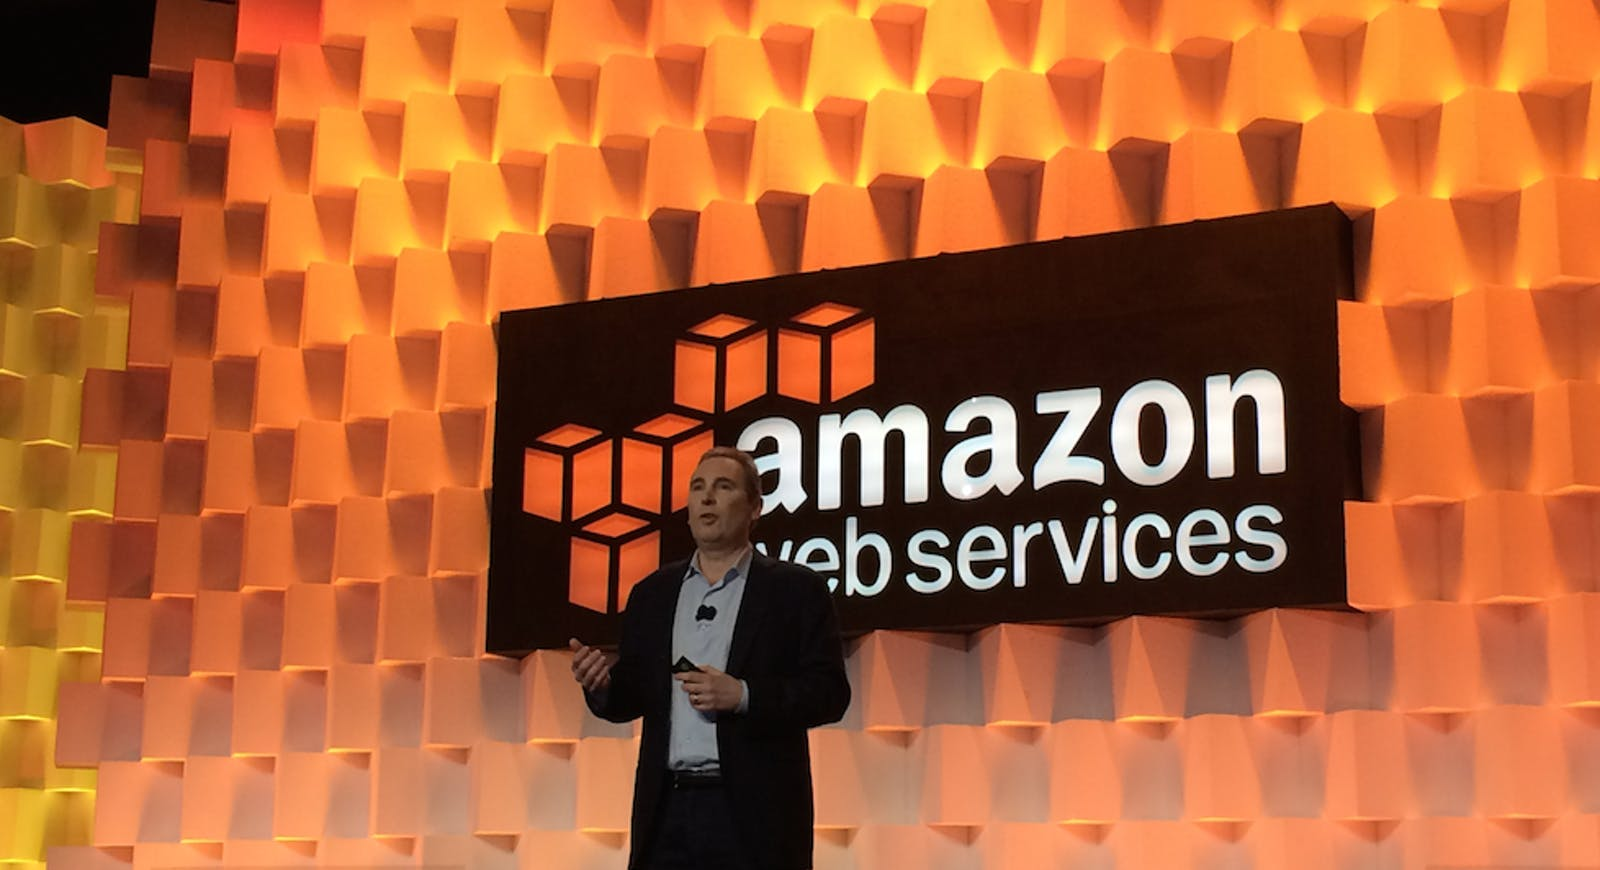 Andy Jassy, chief of Amazon Web Services. Photo by Steve Nellis.